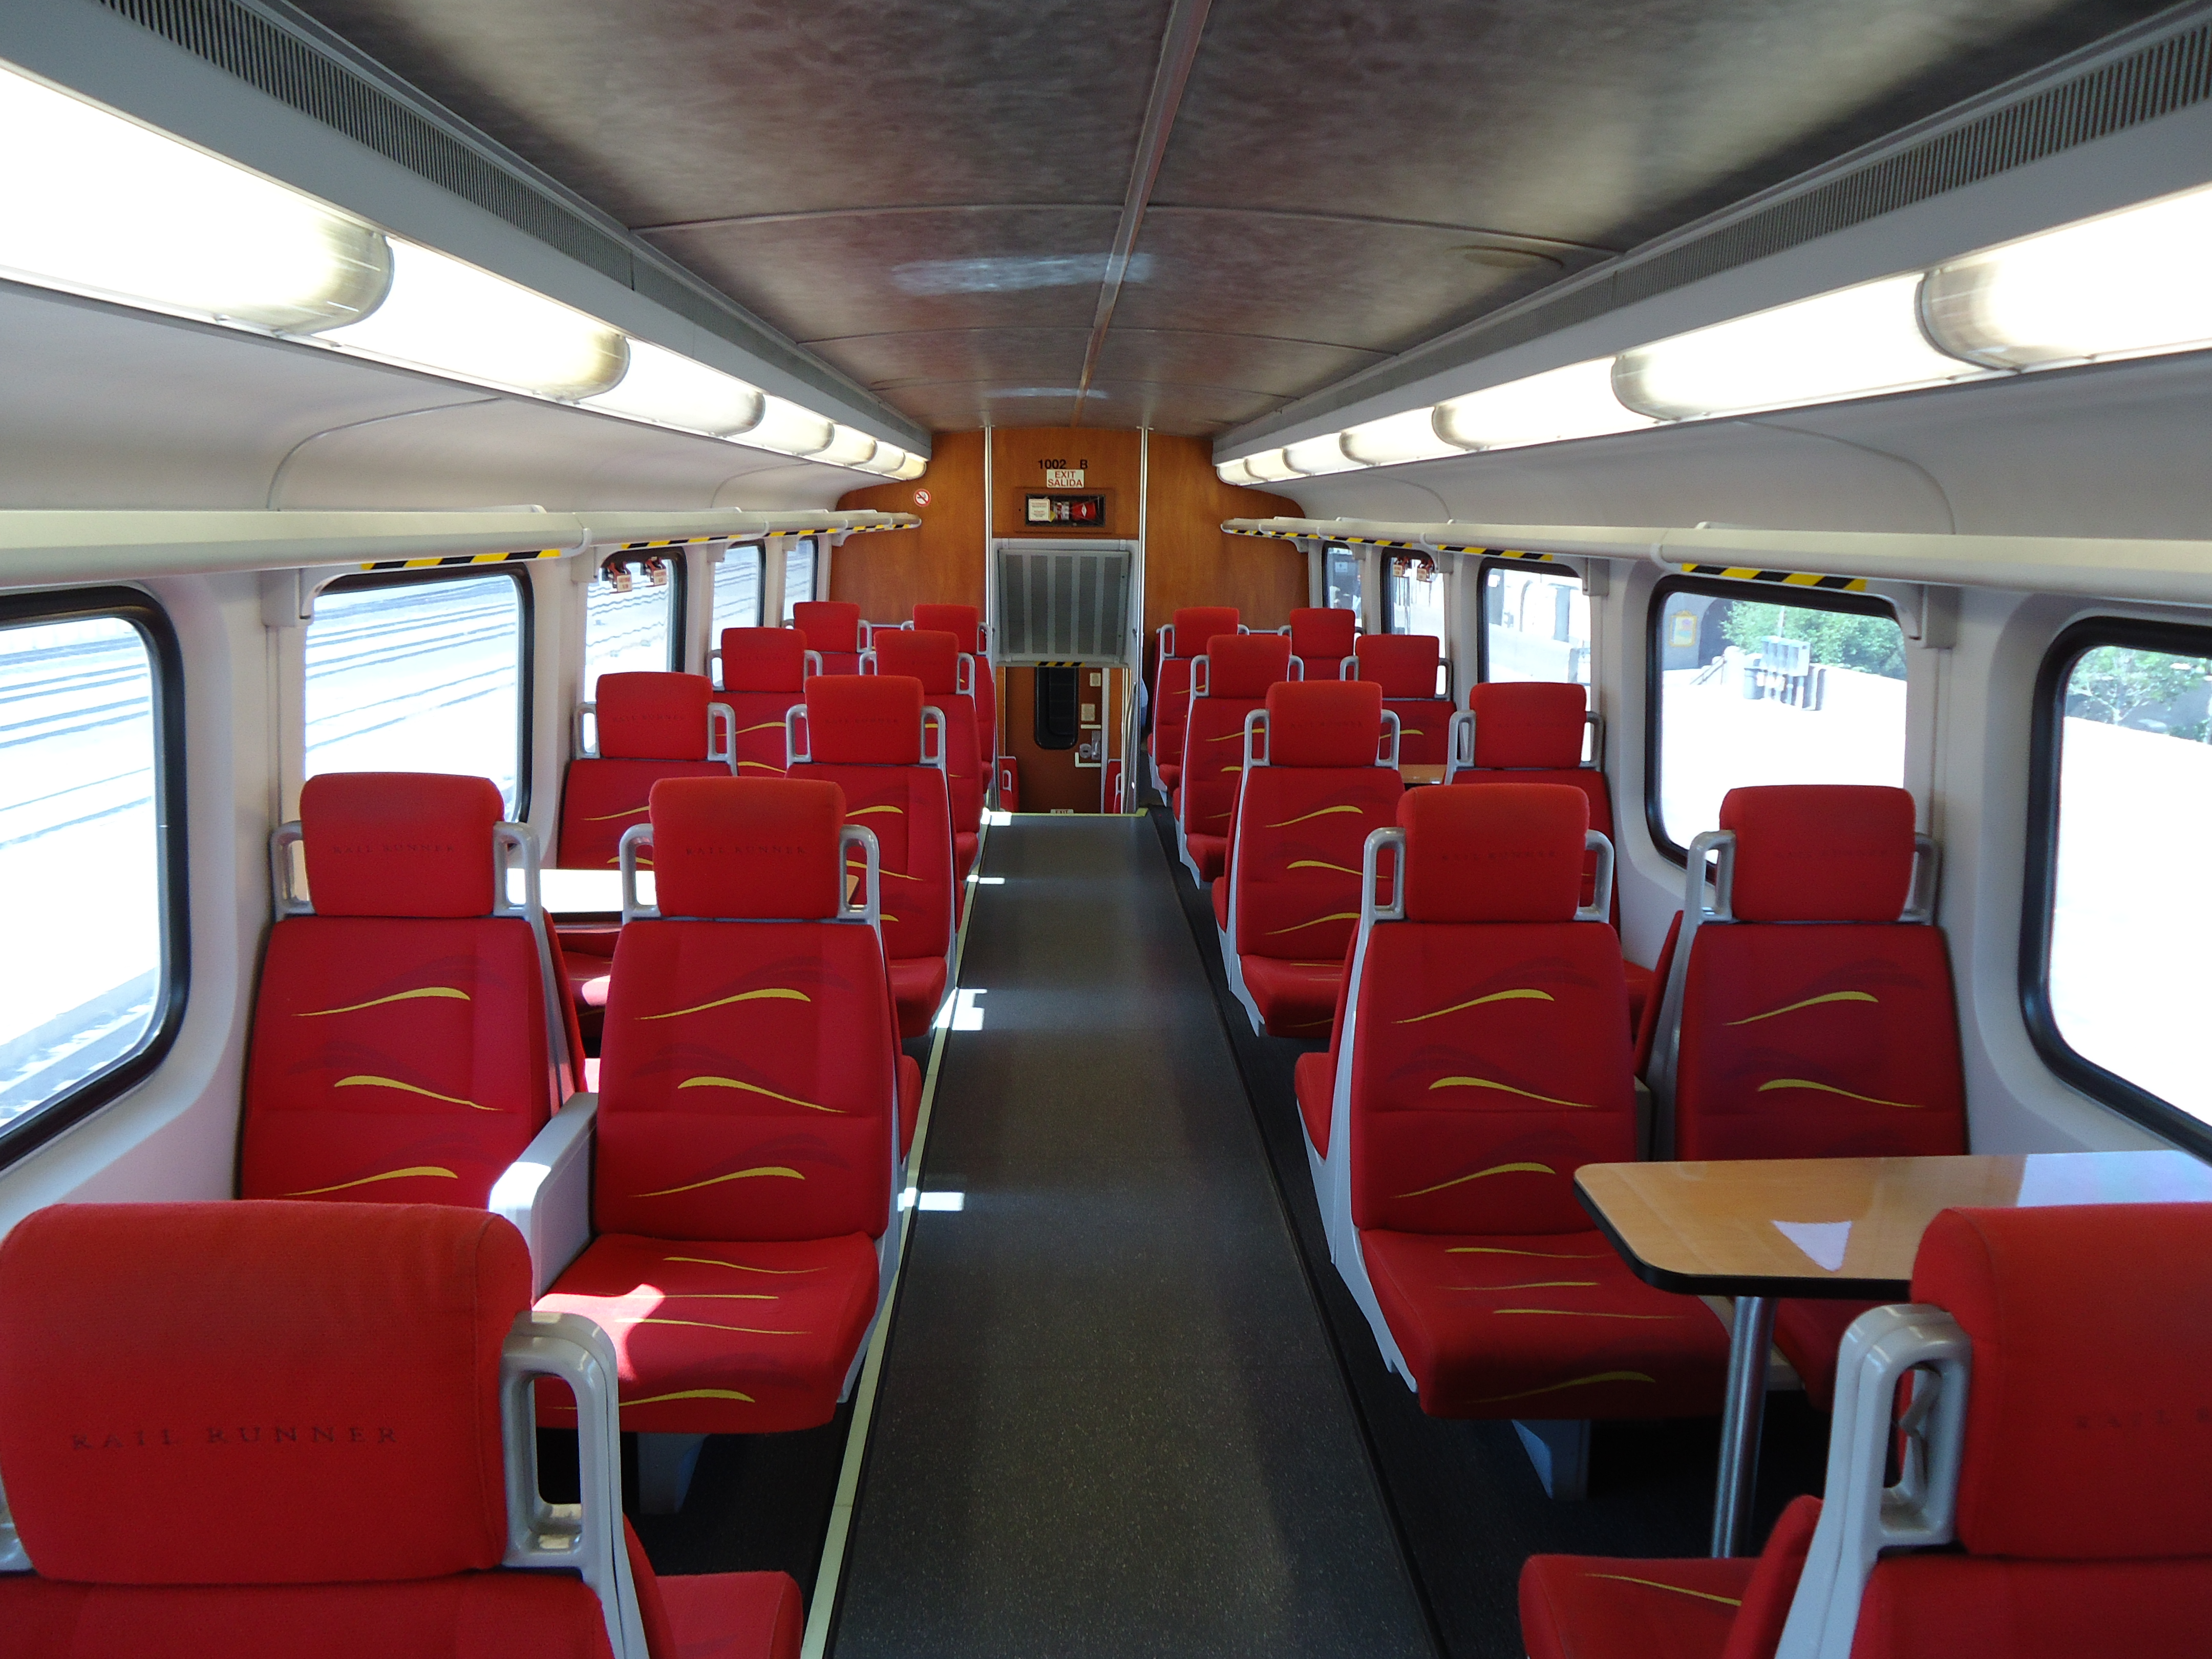 metra buying old trains squandering opportunity to change ancient service streetsblog chicago. Black Bedroom Furniture Sets. Home Design Ideas